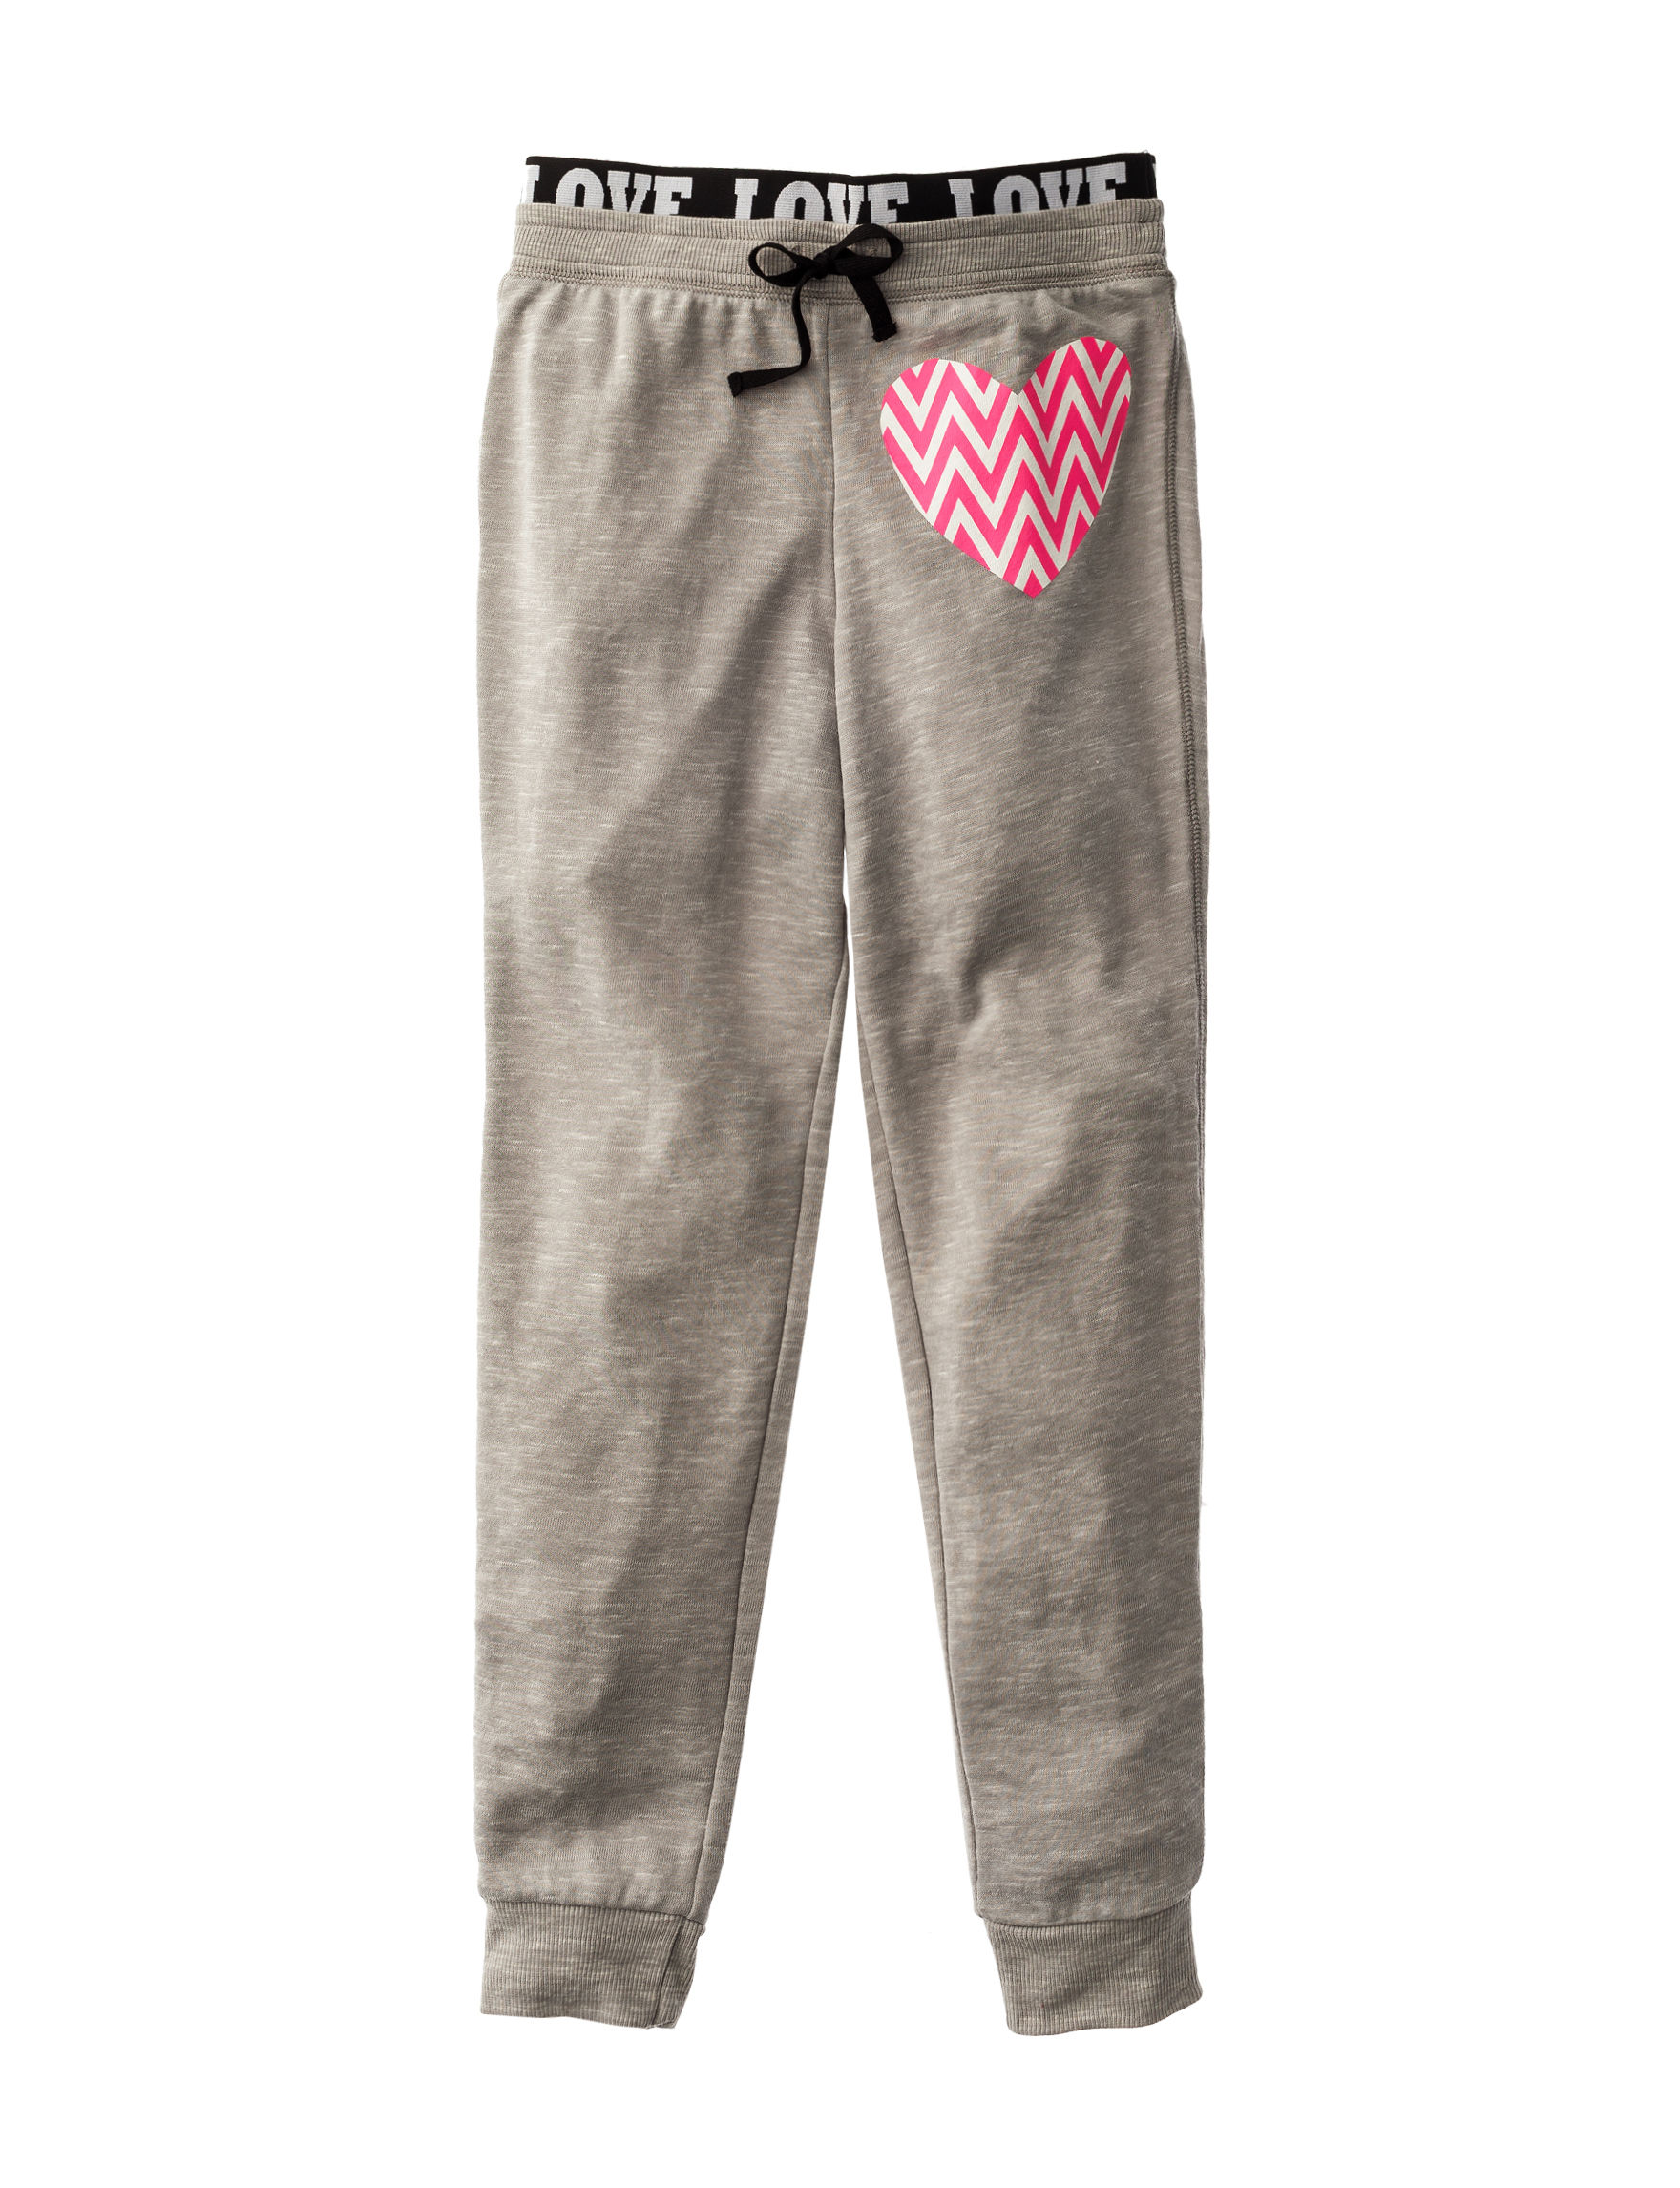 Wishful Park Heather Grey Soft Pants